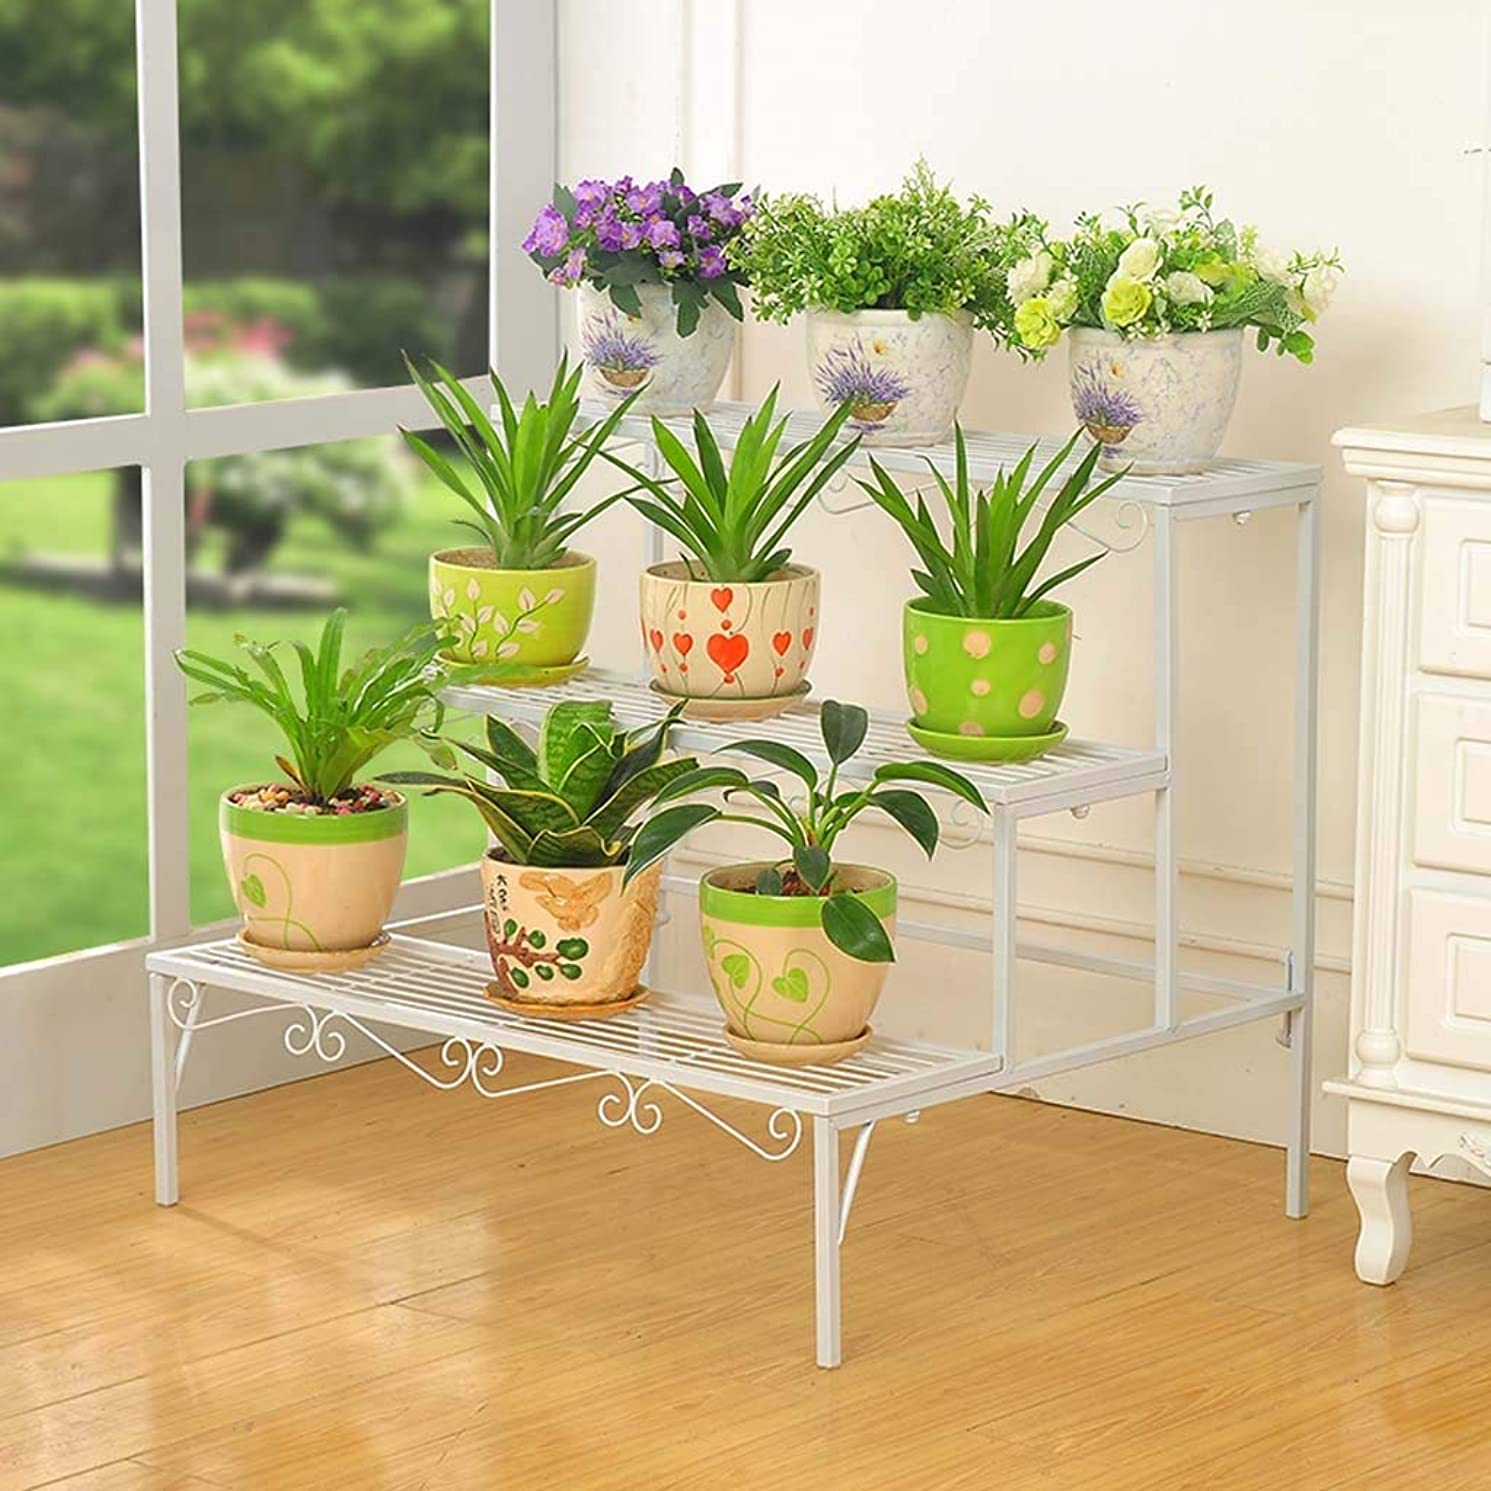 3 Layer Plant Display Stand, Wrought Iron Stepped Flower Pot Rack, Outdoor Garden Living Room Balcony Flower Rack Storage Rack (Color : White)